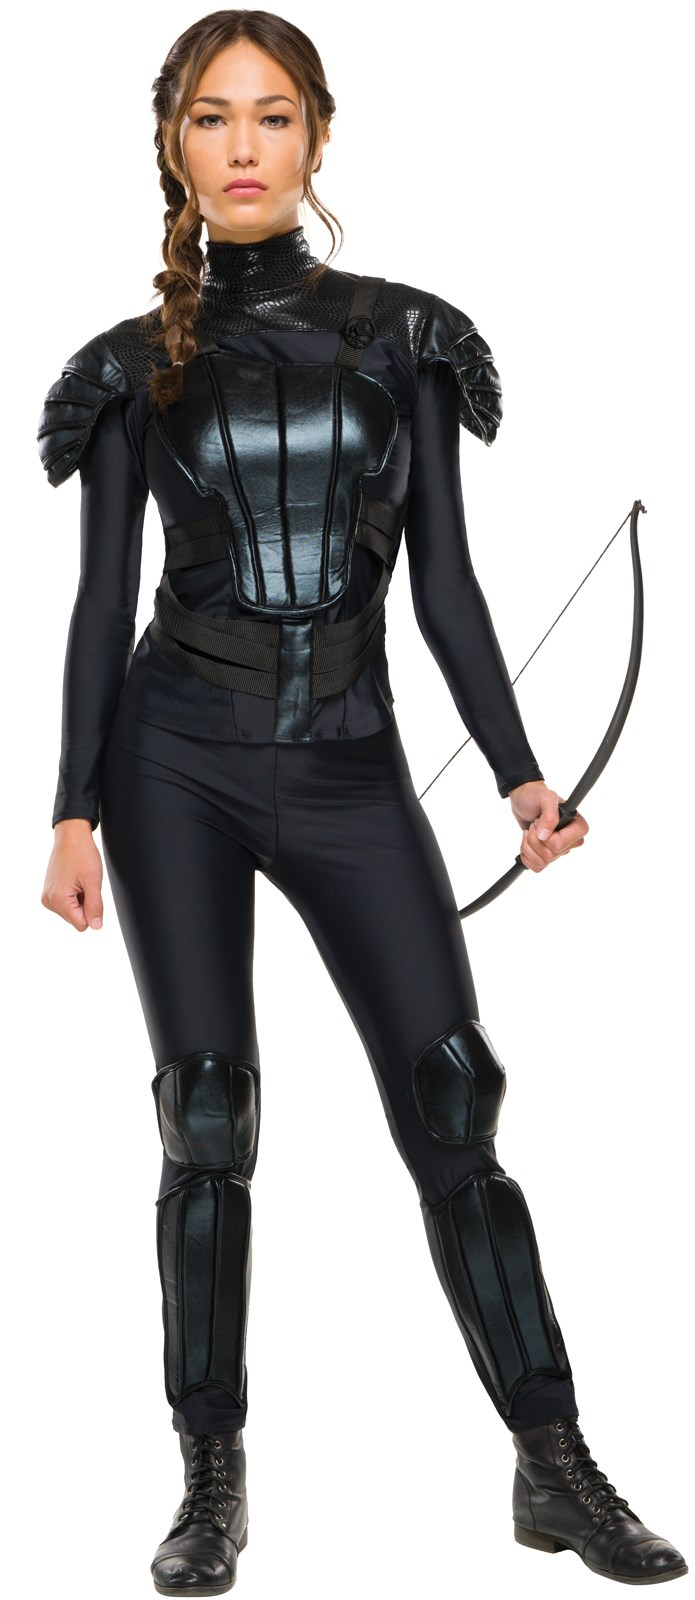 Hunger Games Mockingjay Dress Costume The Hunger Games Mockingjay